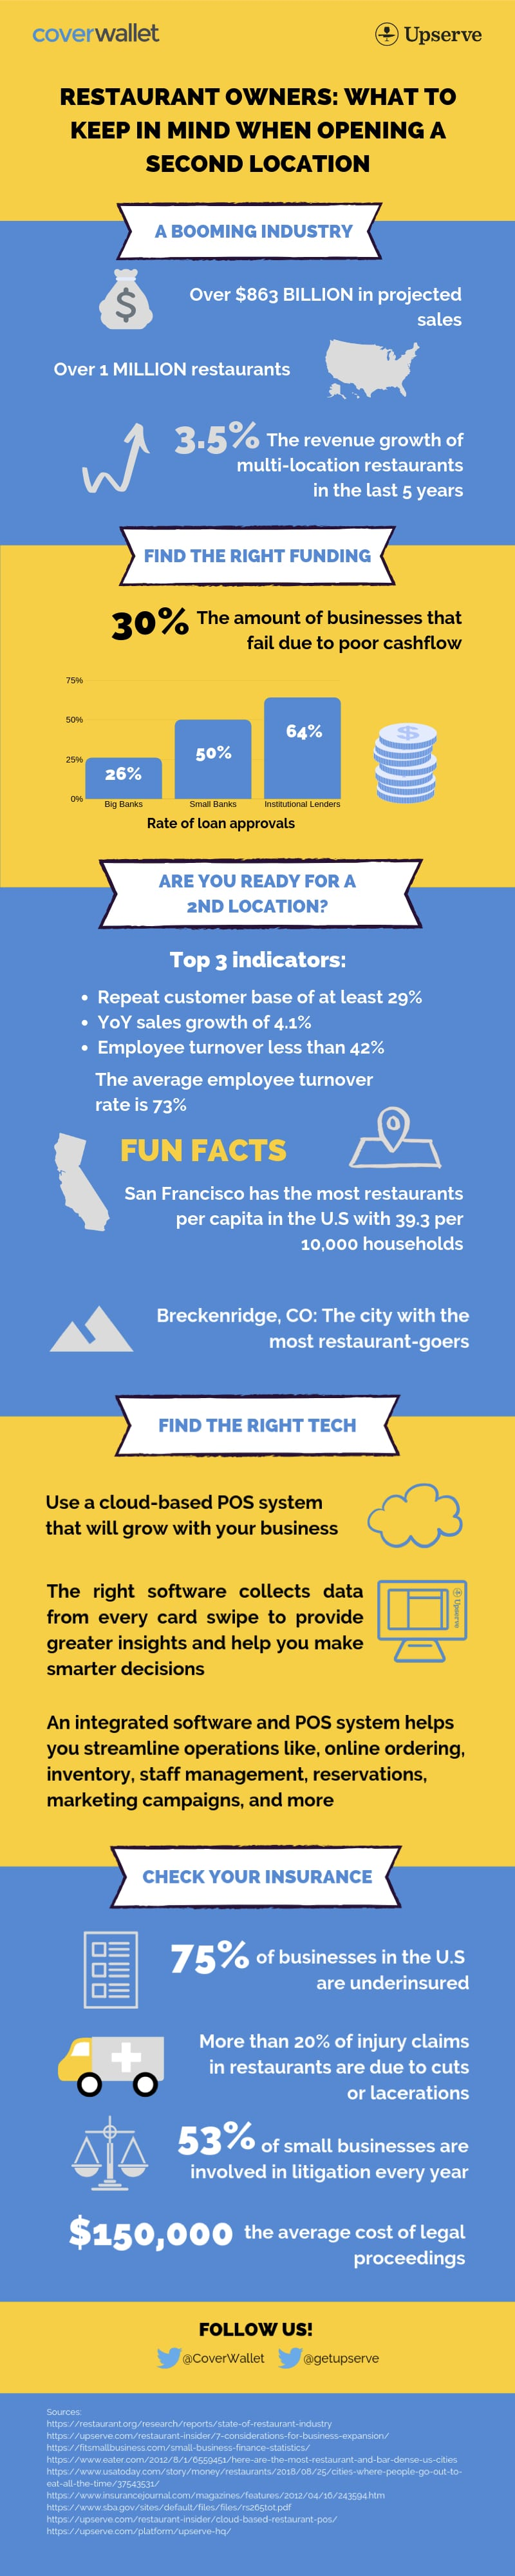 CoverWallet + Upserve how to open a second location infographic